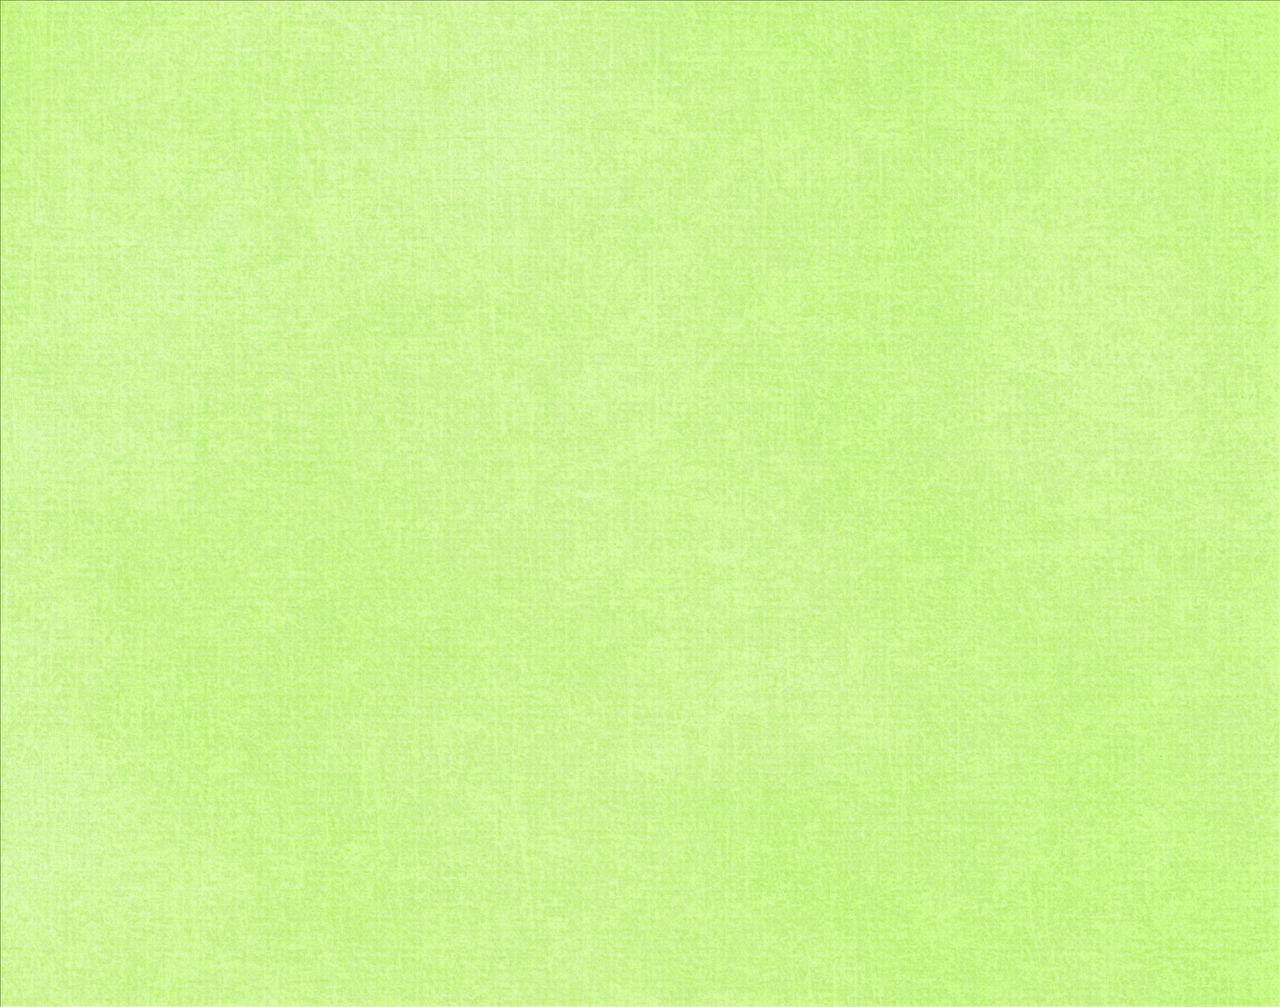 Paint texture paints background download photo green paint texture - Pastel Green Color Submited Images